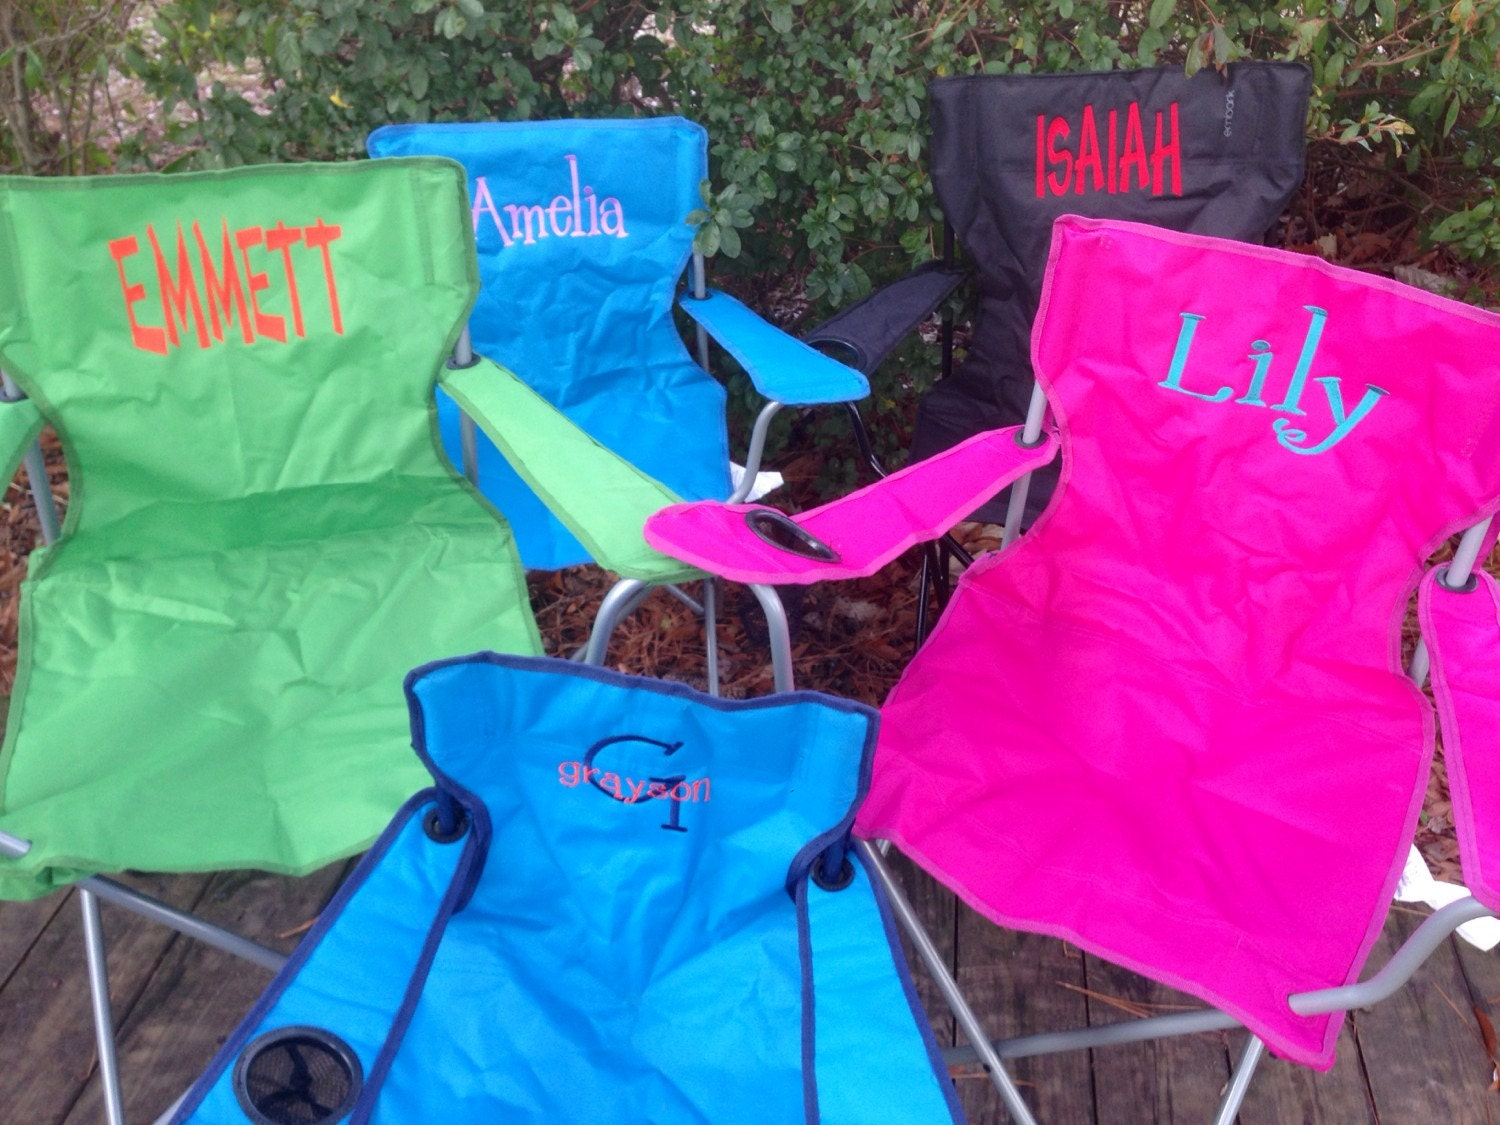 Folding camping chair bag -  Zoom